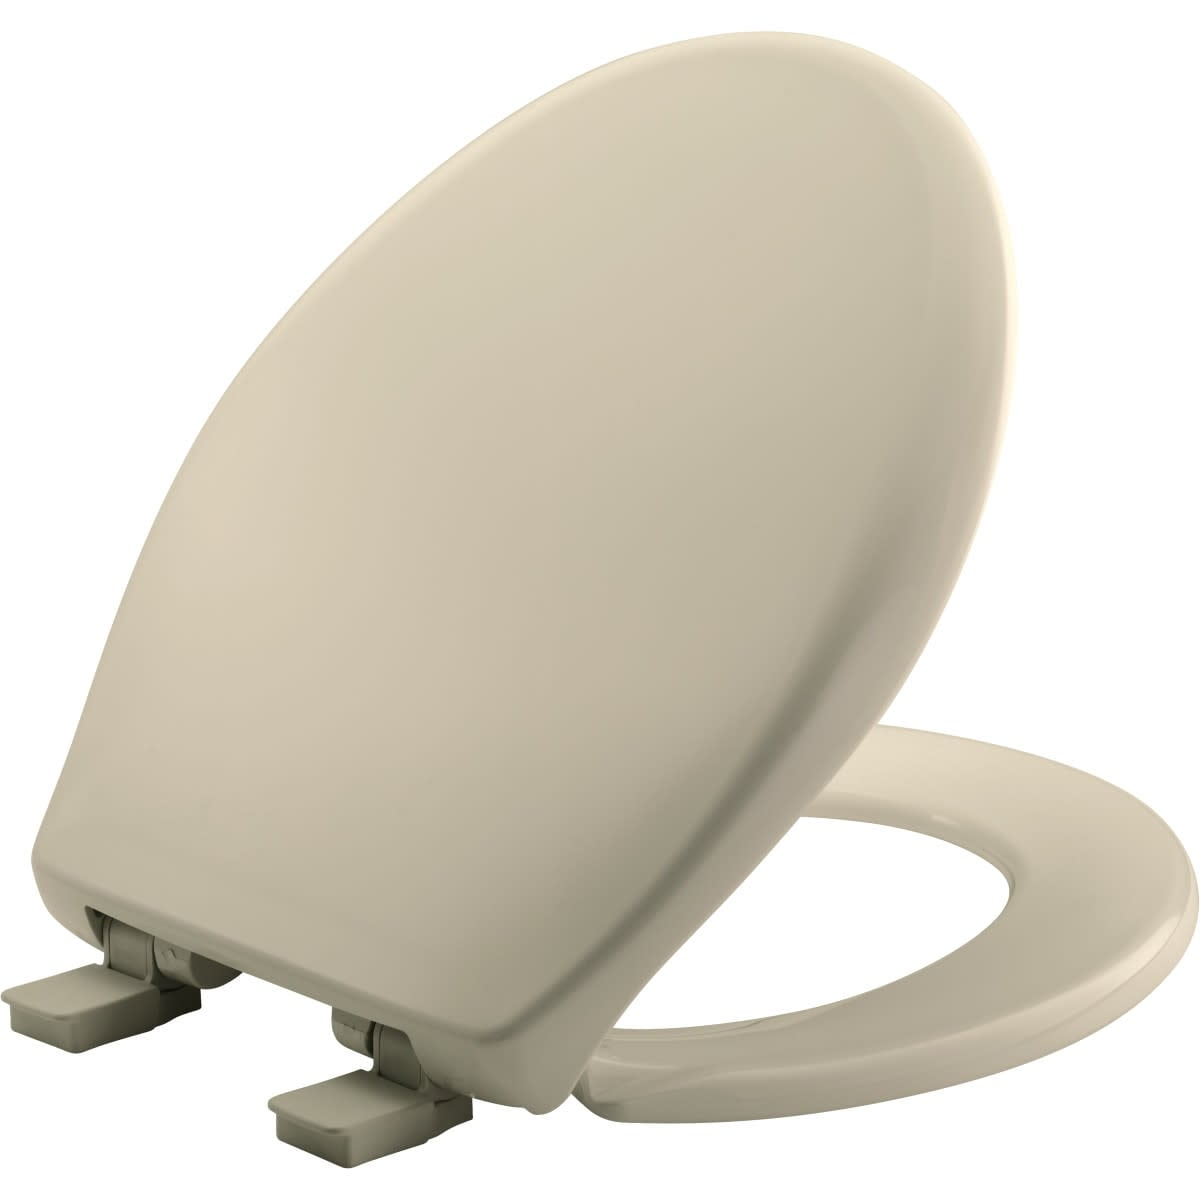 Peachy Bemis 200E4 Affinity Round Closed Front Toilet Seat With Soft Close Pdpeps Interior Chair Design Pdpepsorg